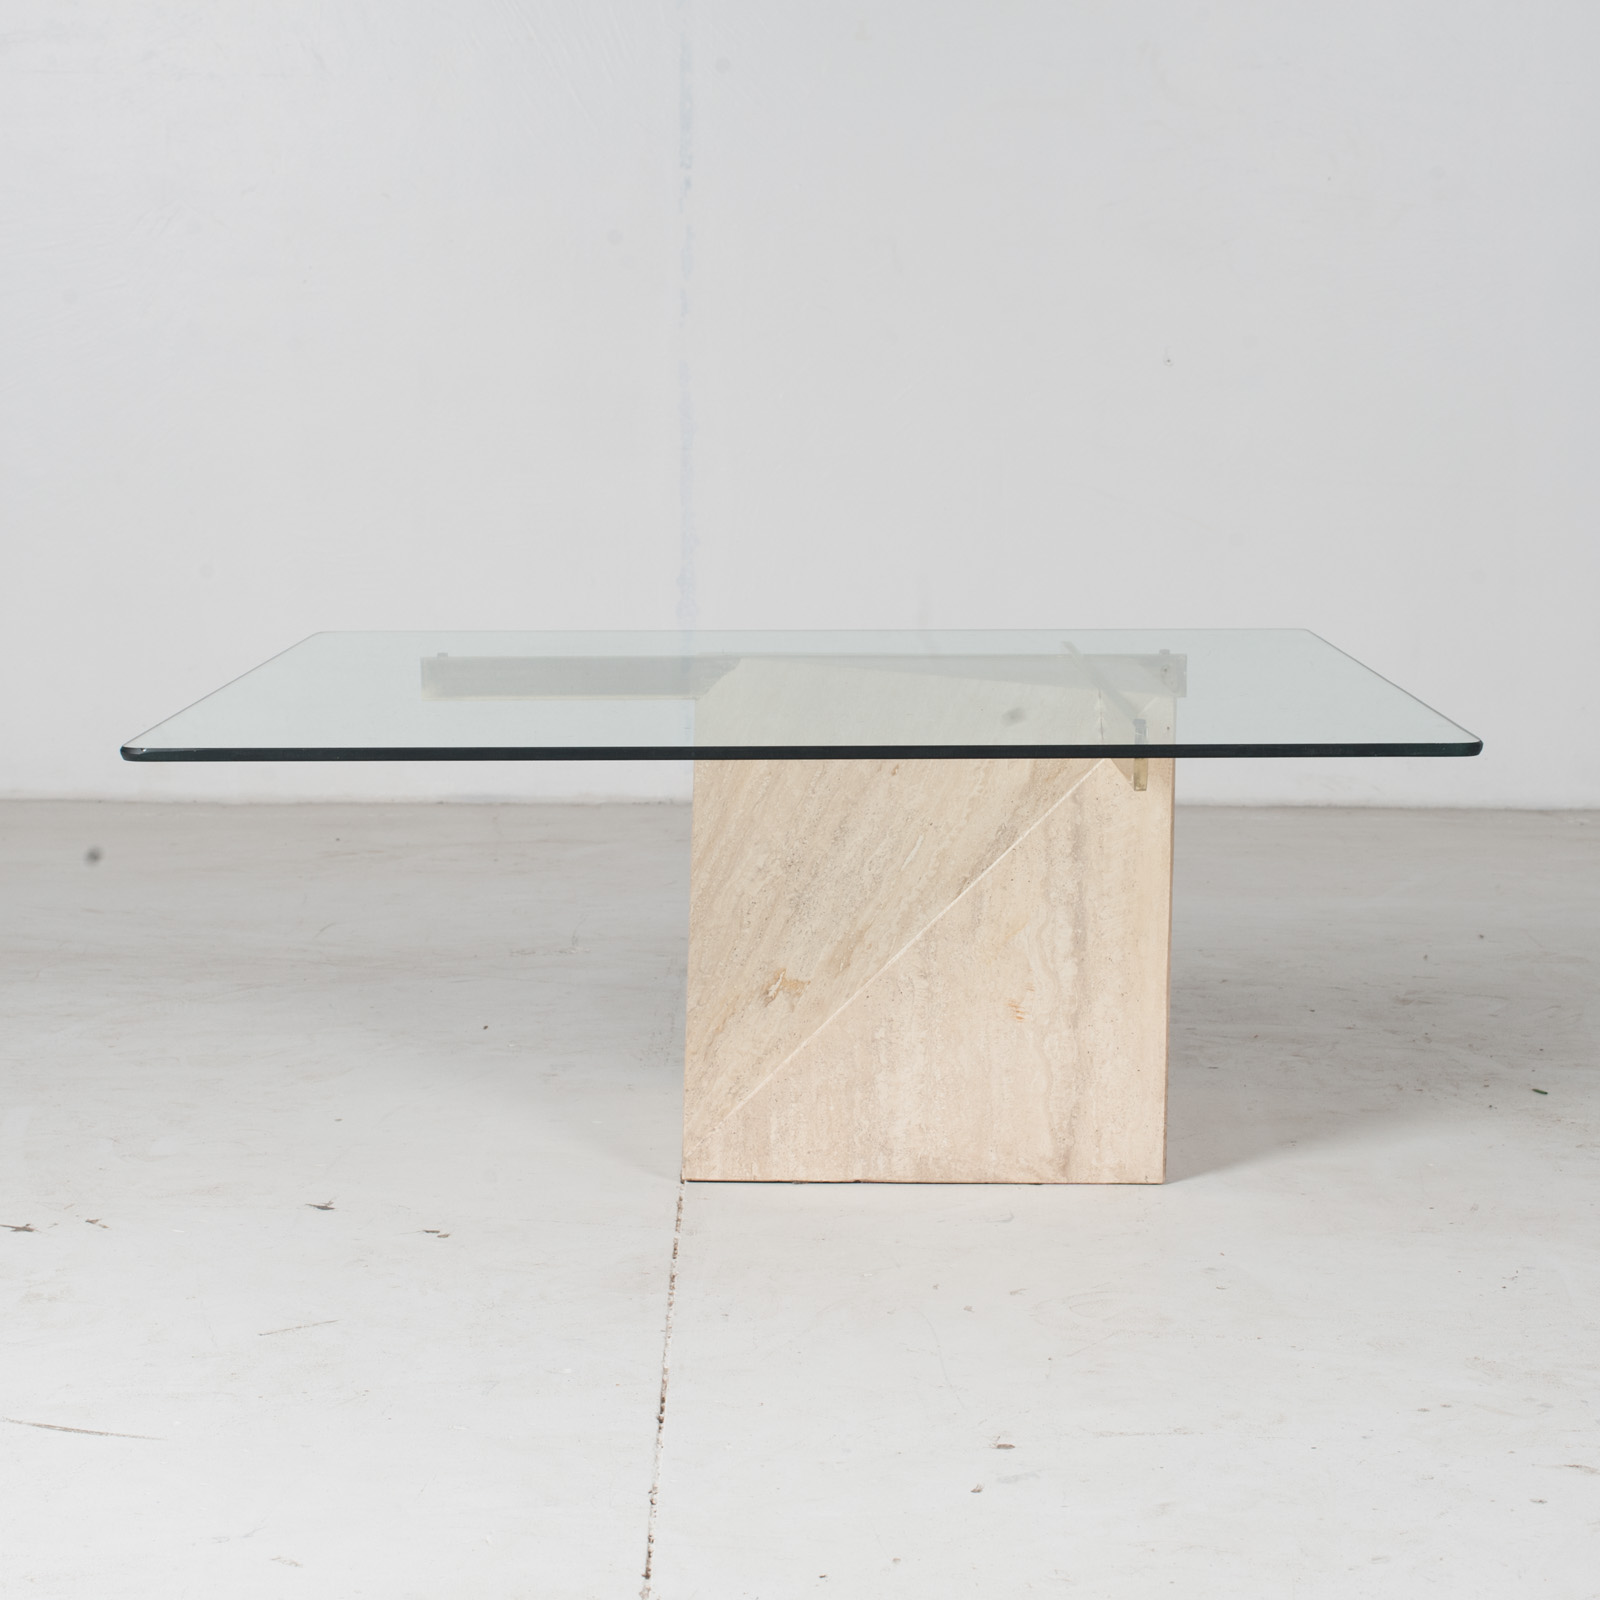 Coffee Table By Artedi In Travertine, Cantilevered Glass And Brass, 1970s, Italy1